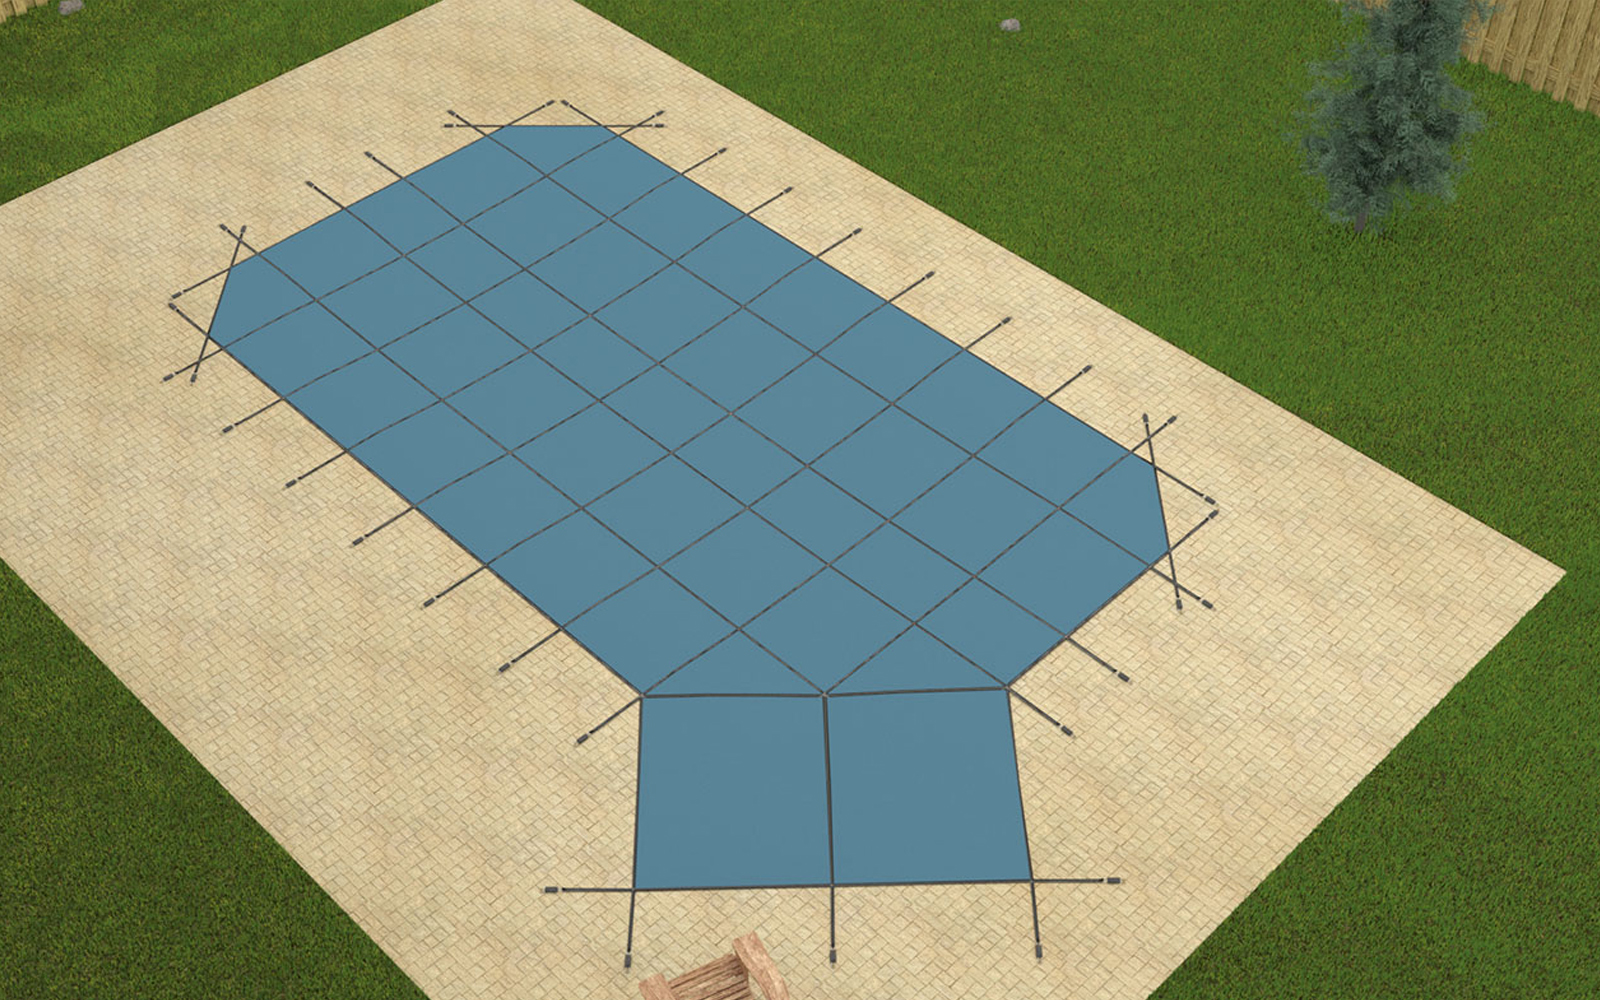 16 39 6 X35 39 6 Grecian Blue Mesh In Ground Swimming Pool Safety Cover W Right Step Ebay